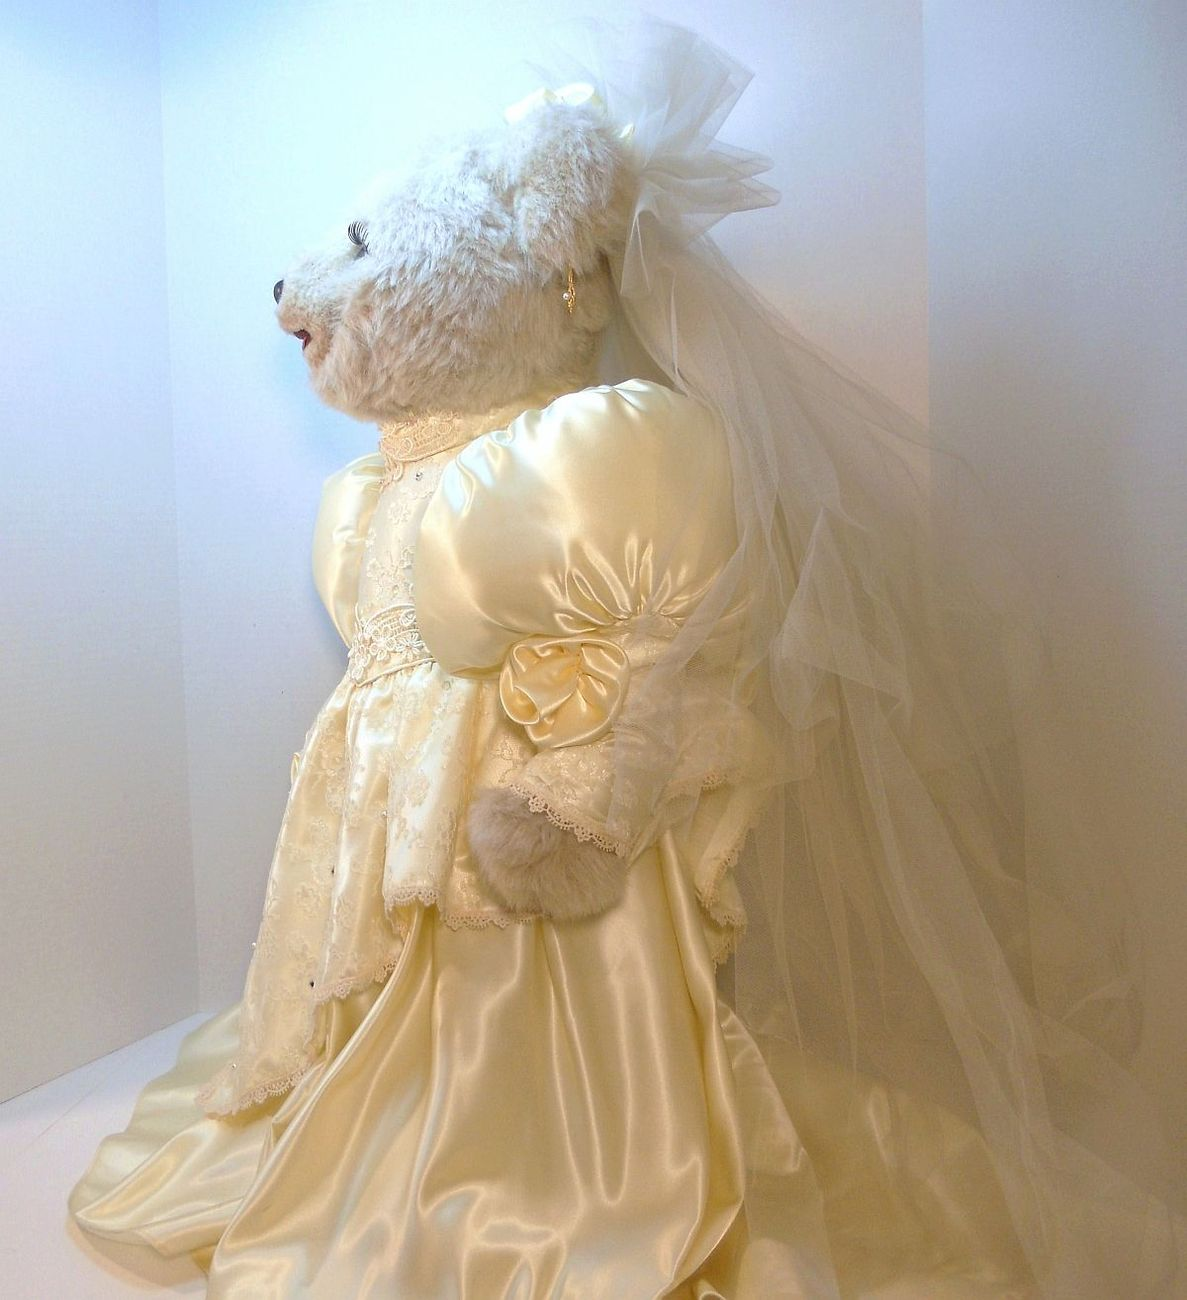 Image 3 of Tilly Collectibles Princess Nicole Wedding Bear 1990 QVC